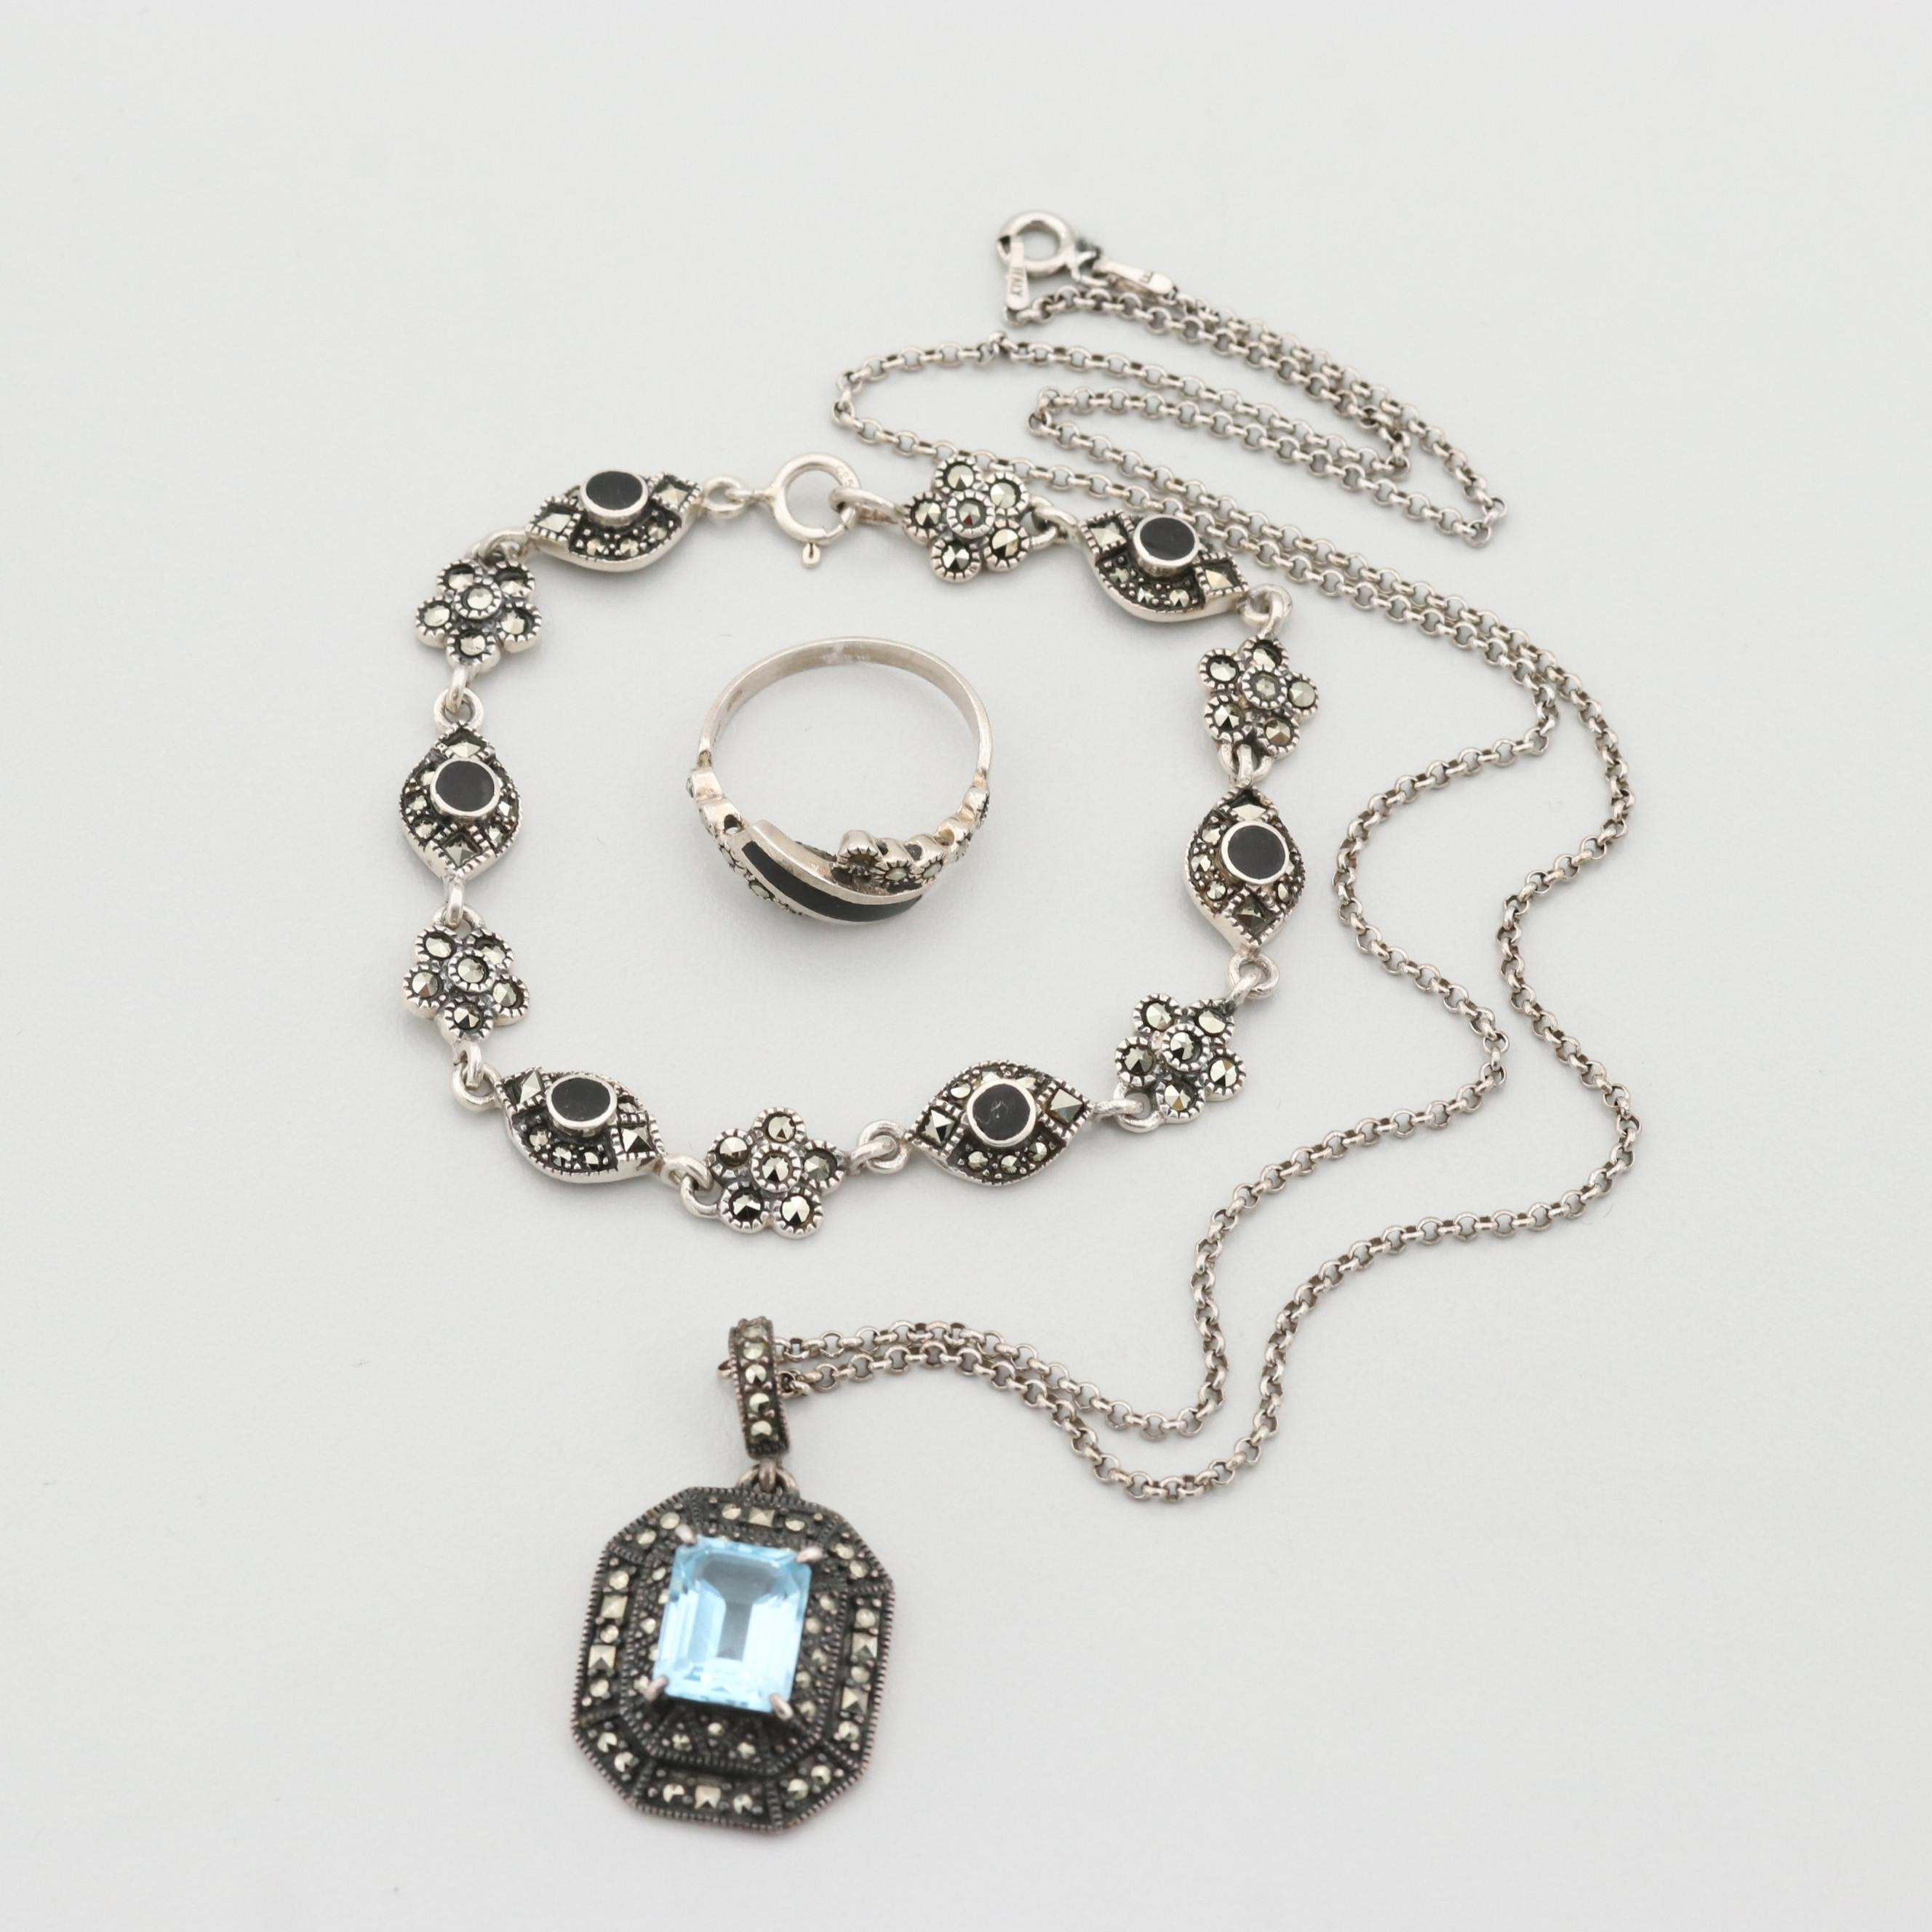 Sterling Silver Blue Topaz, Black Onyx and Marcasite Jewelry Assortment